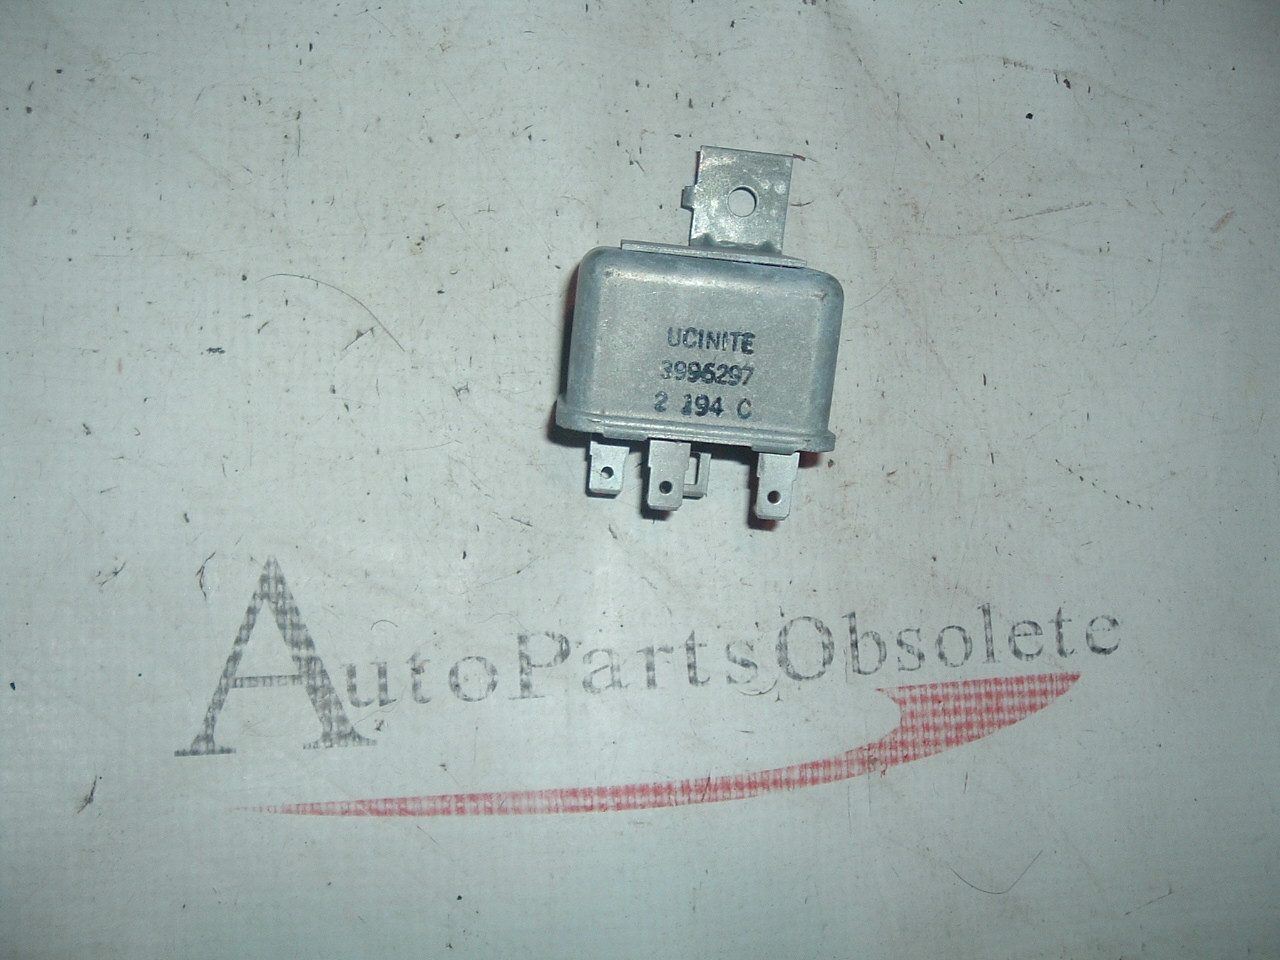 1972 73 Corvette camaro chevelle anti diesel relay nos 3996297 (z 3996297)